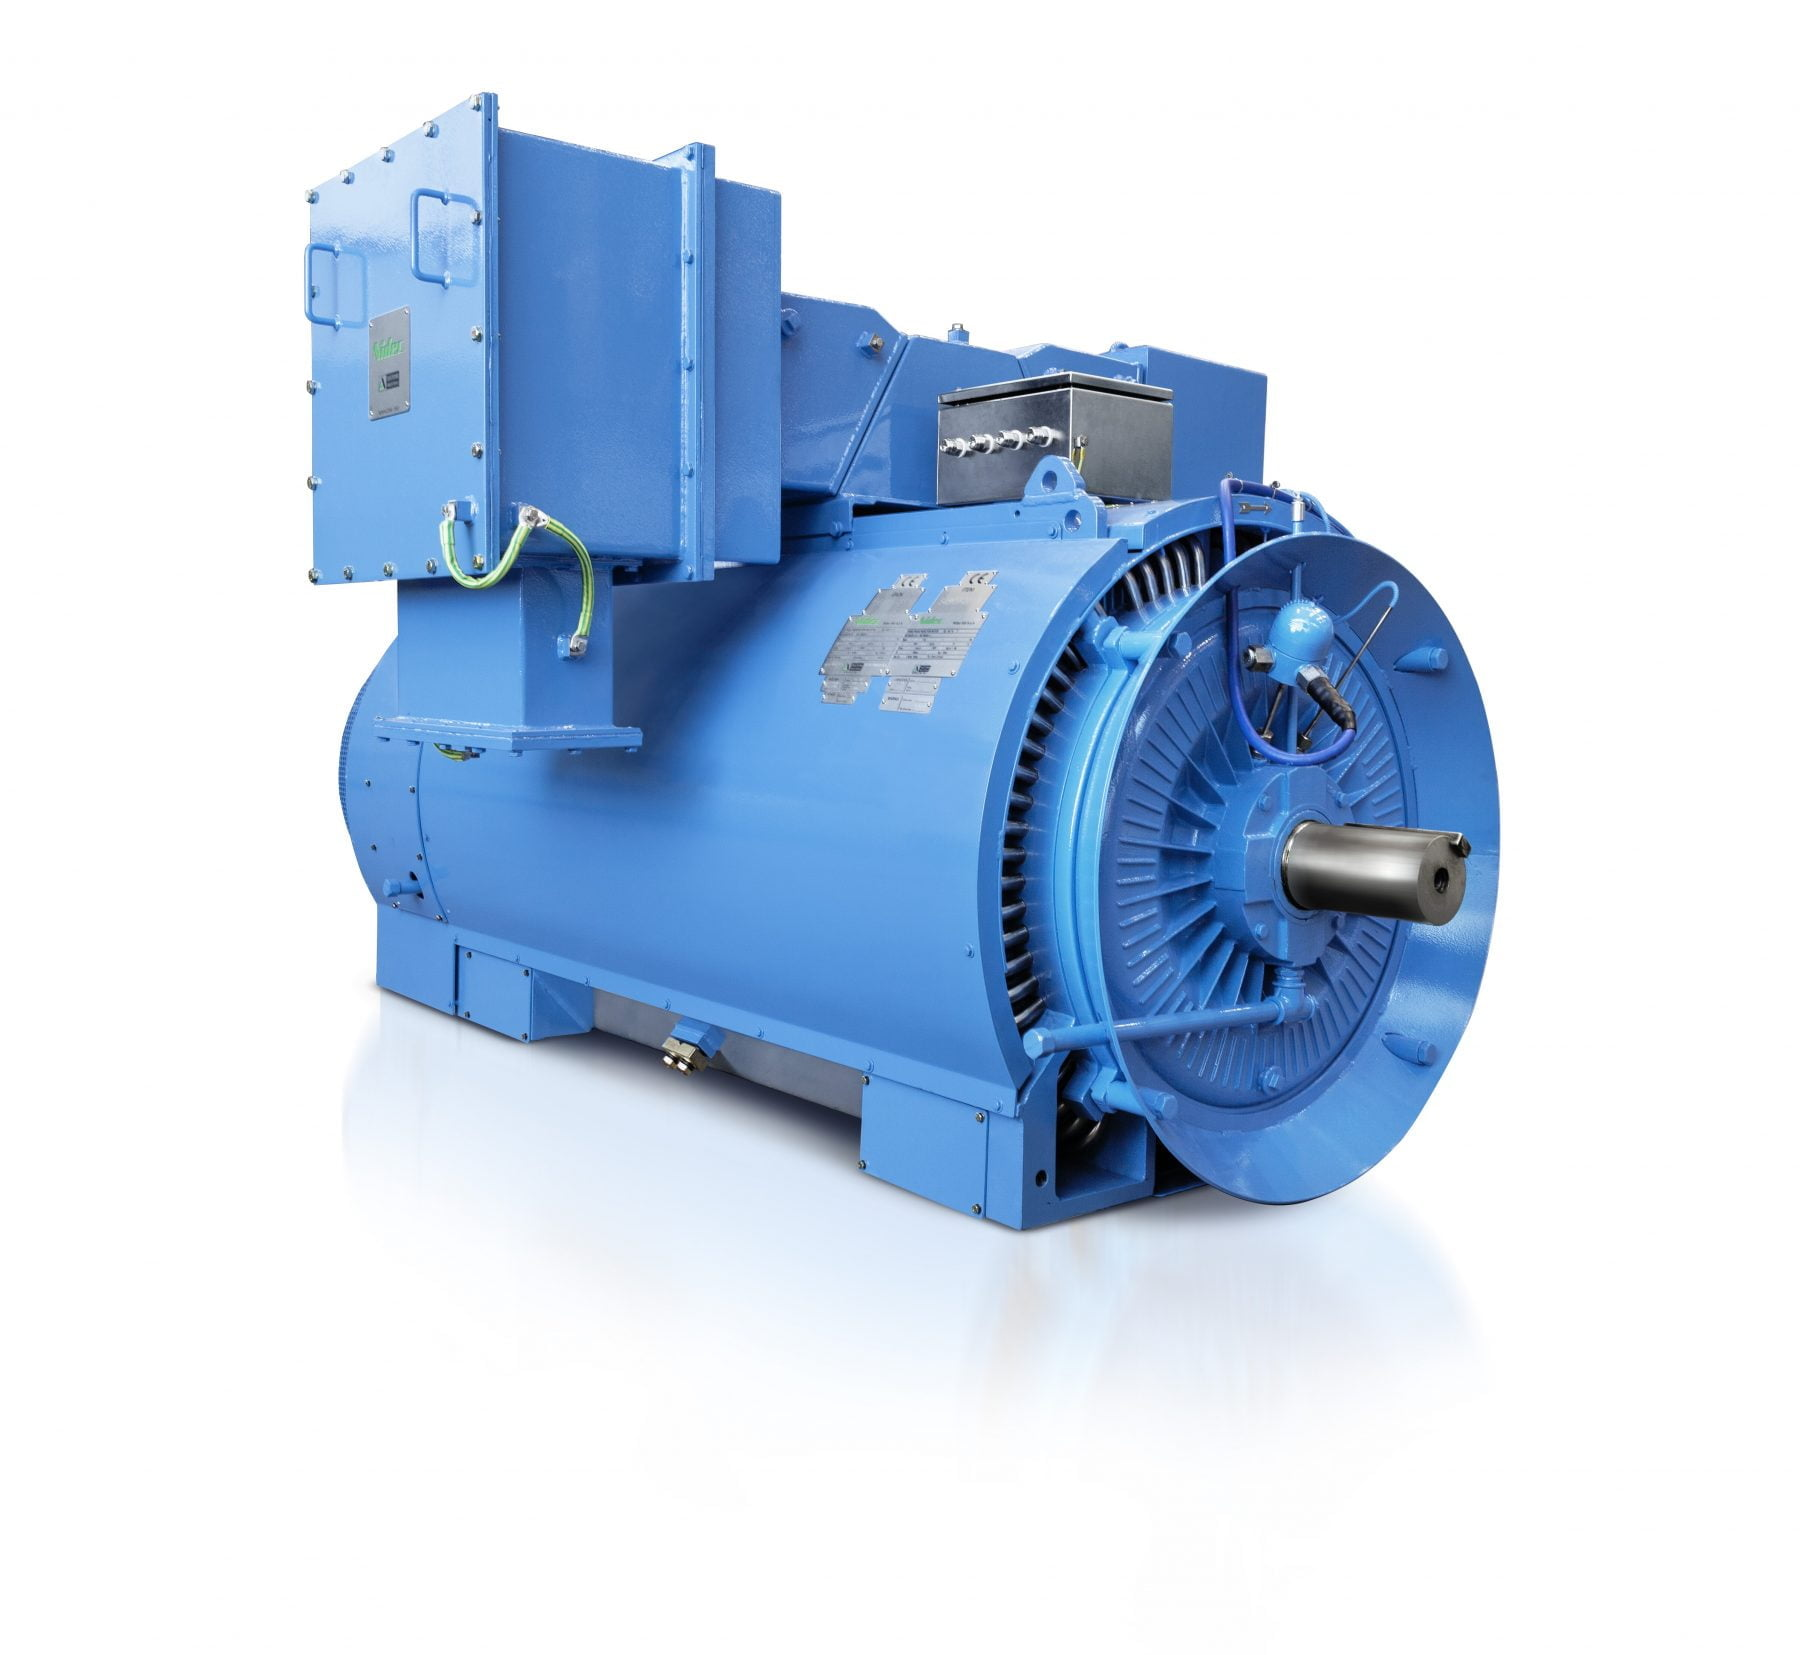 Tefc totally enclosed fan cooled motors nidec for Totally enclosed fan cooled motor